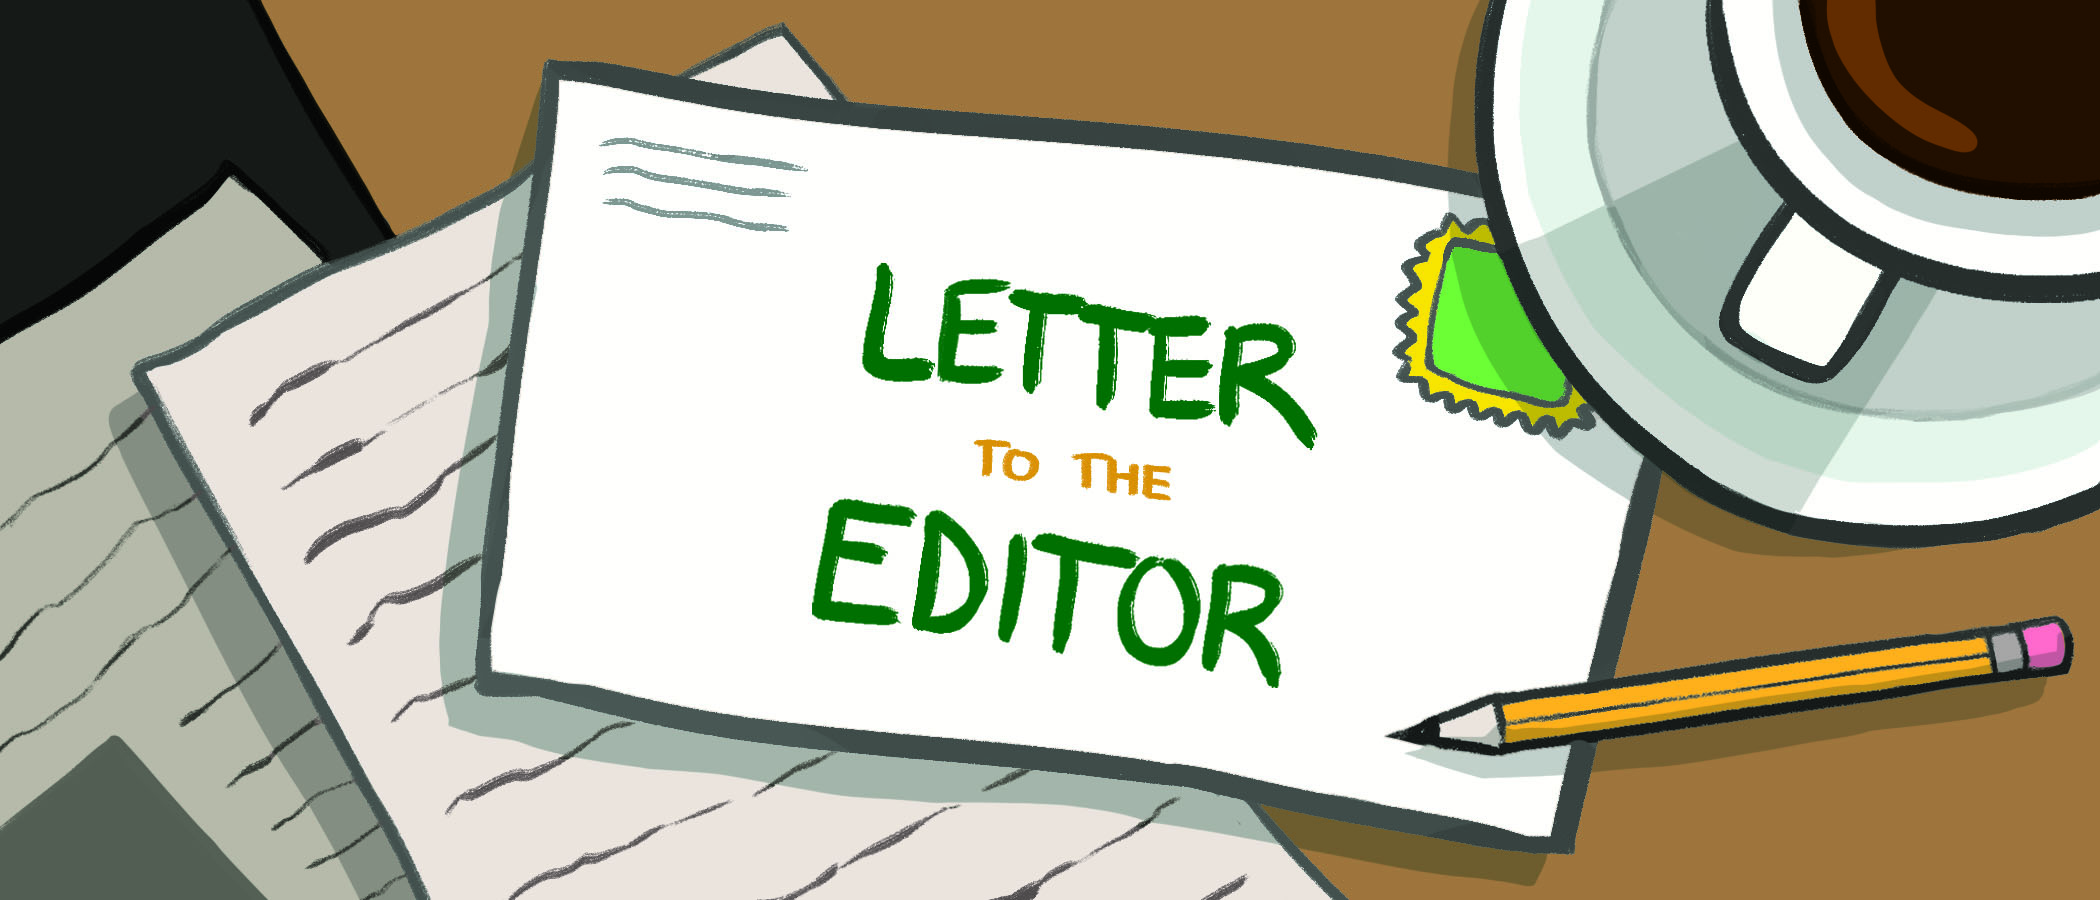 """Graphic illustration depicting a letter on a coffee table that reads """"Letter to the Editor"""" surrounded by a coffee cup, pencil and loose papers."""